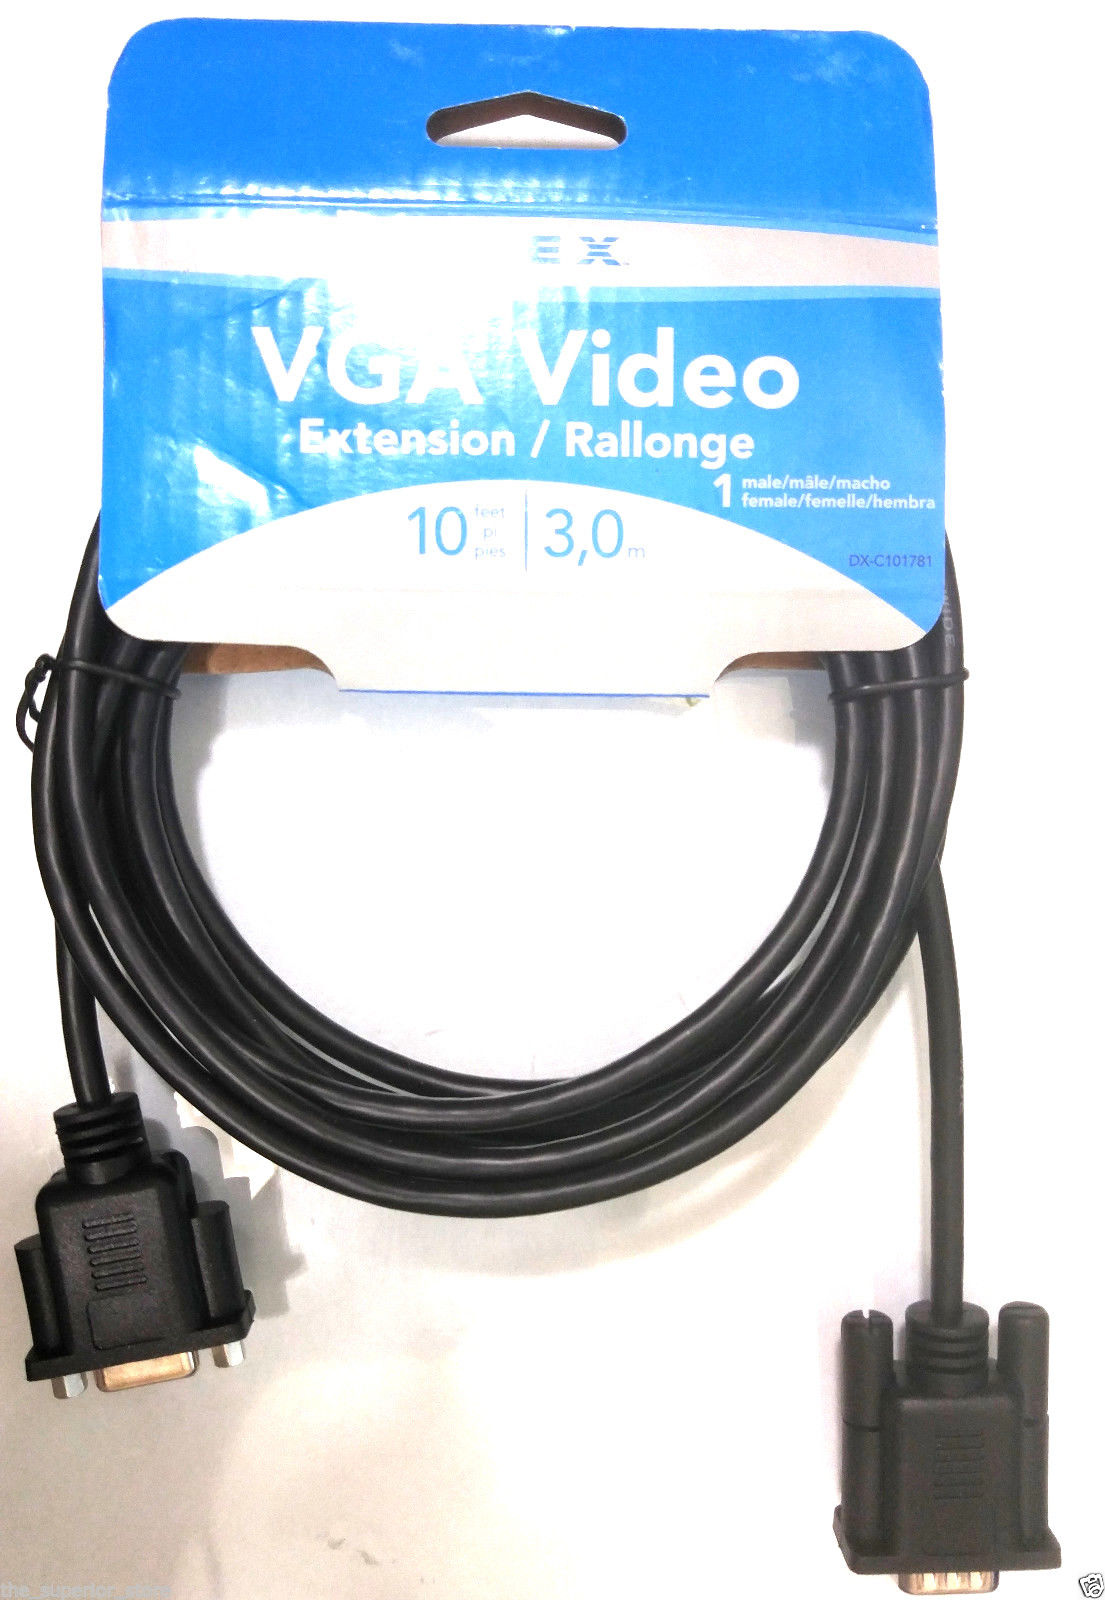 Dynex 10 ft, 3m VGA Display Extension Cable DX-C101781